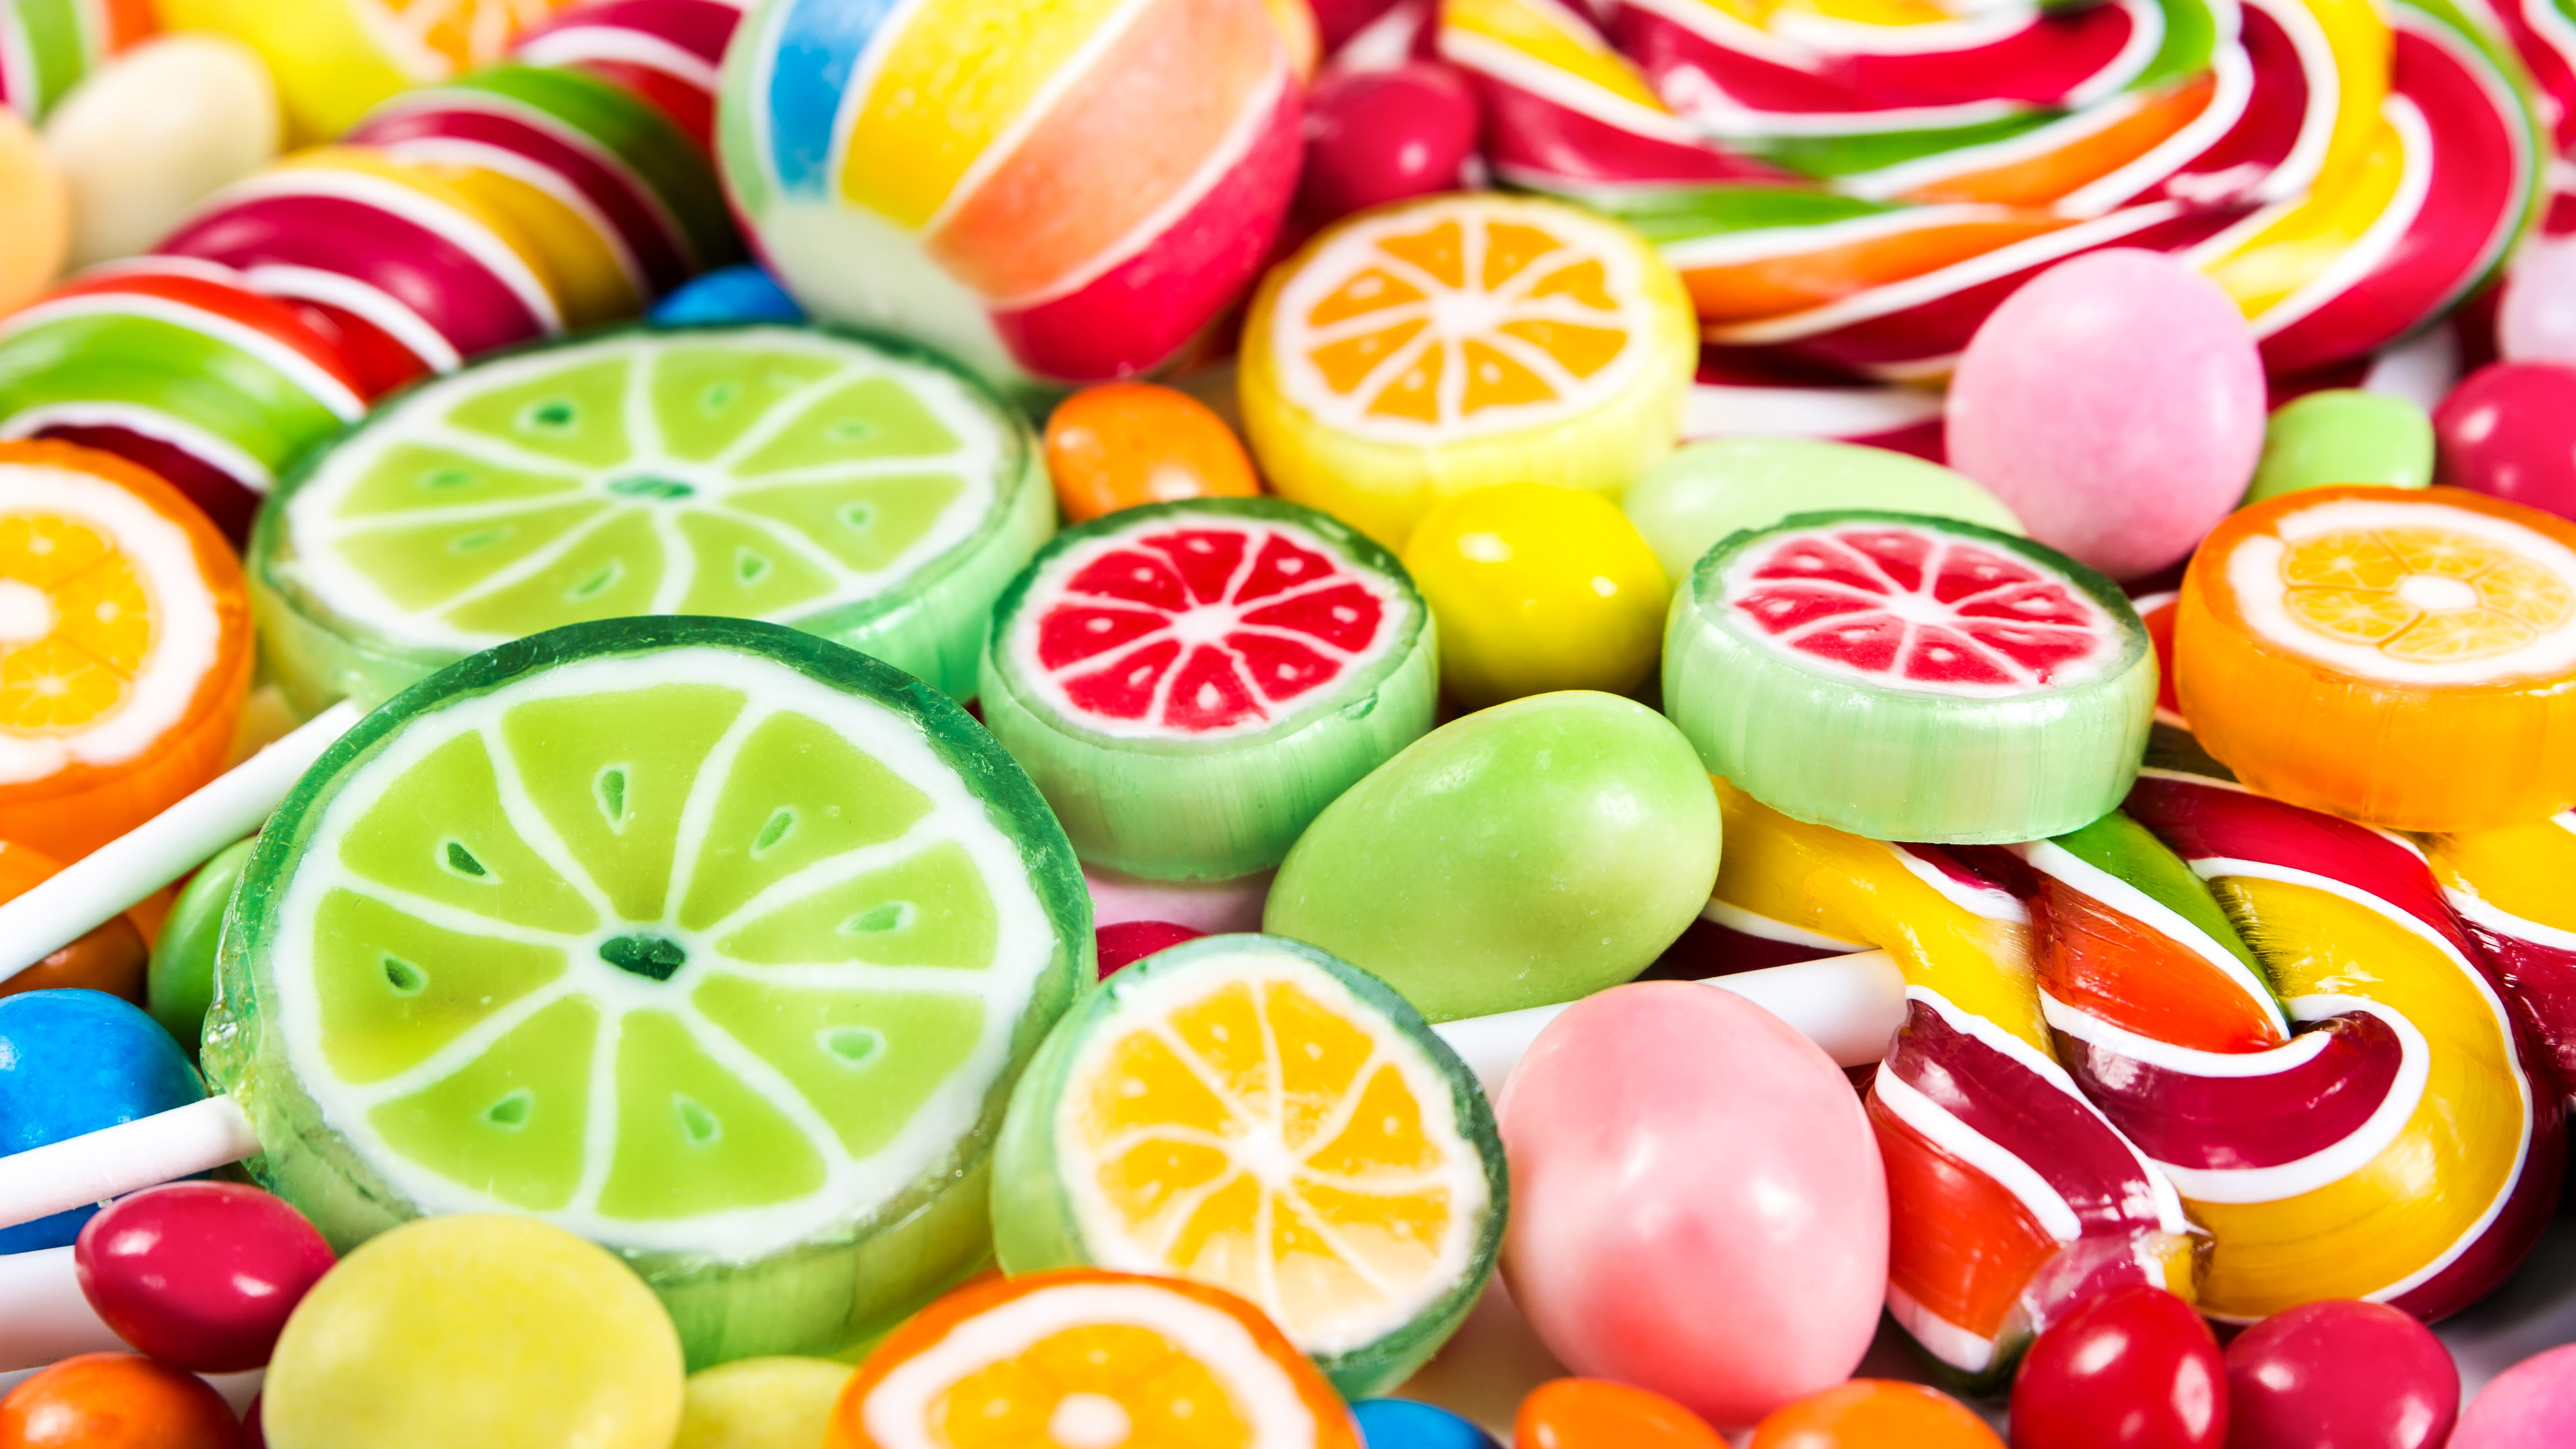 colorful candy wallpaper 8 - photo #23